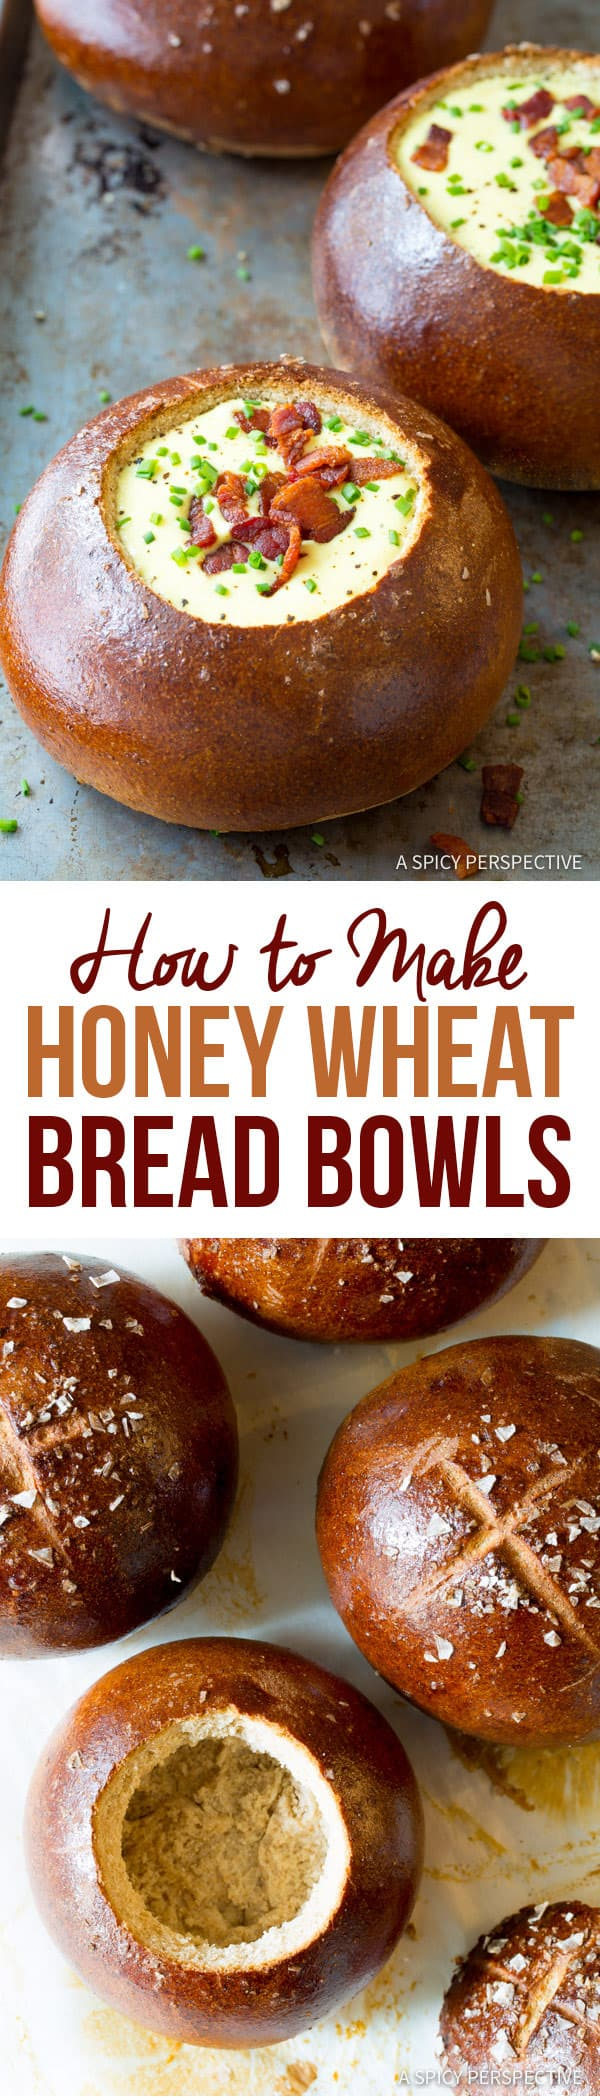 The Best Honey Wheat Bread Bowl Recipe | ASpicyPerspective.com